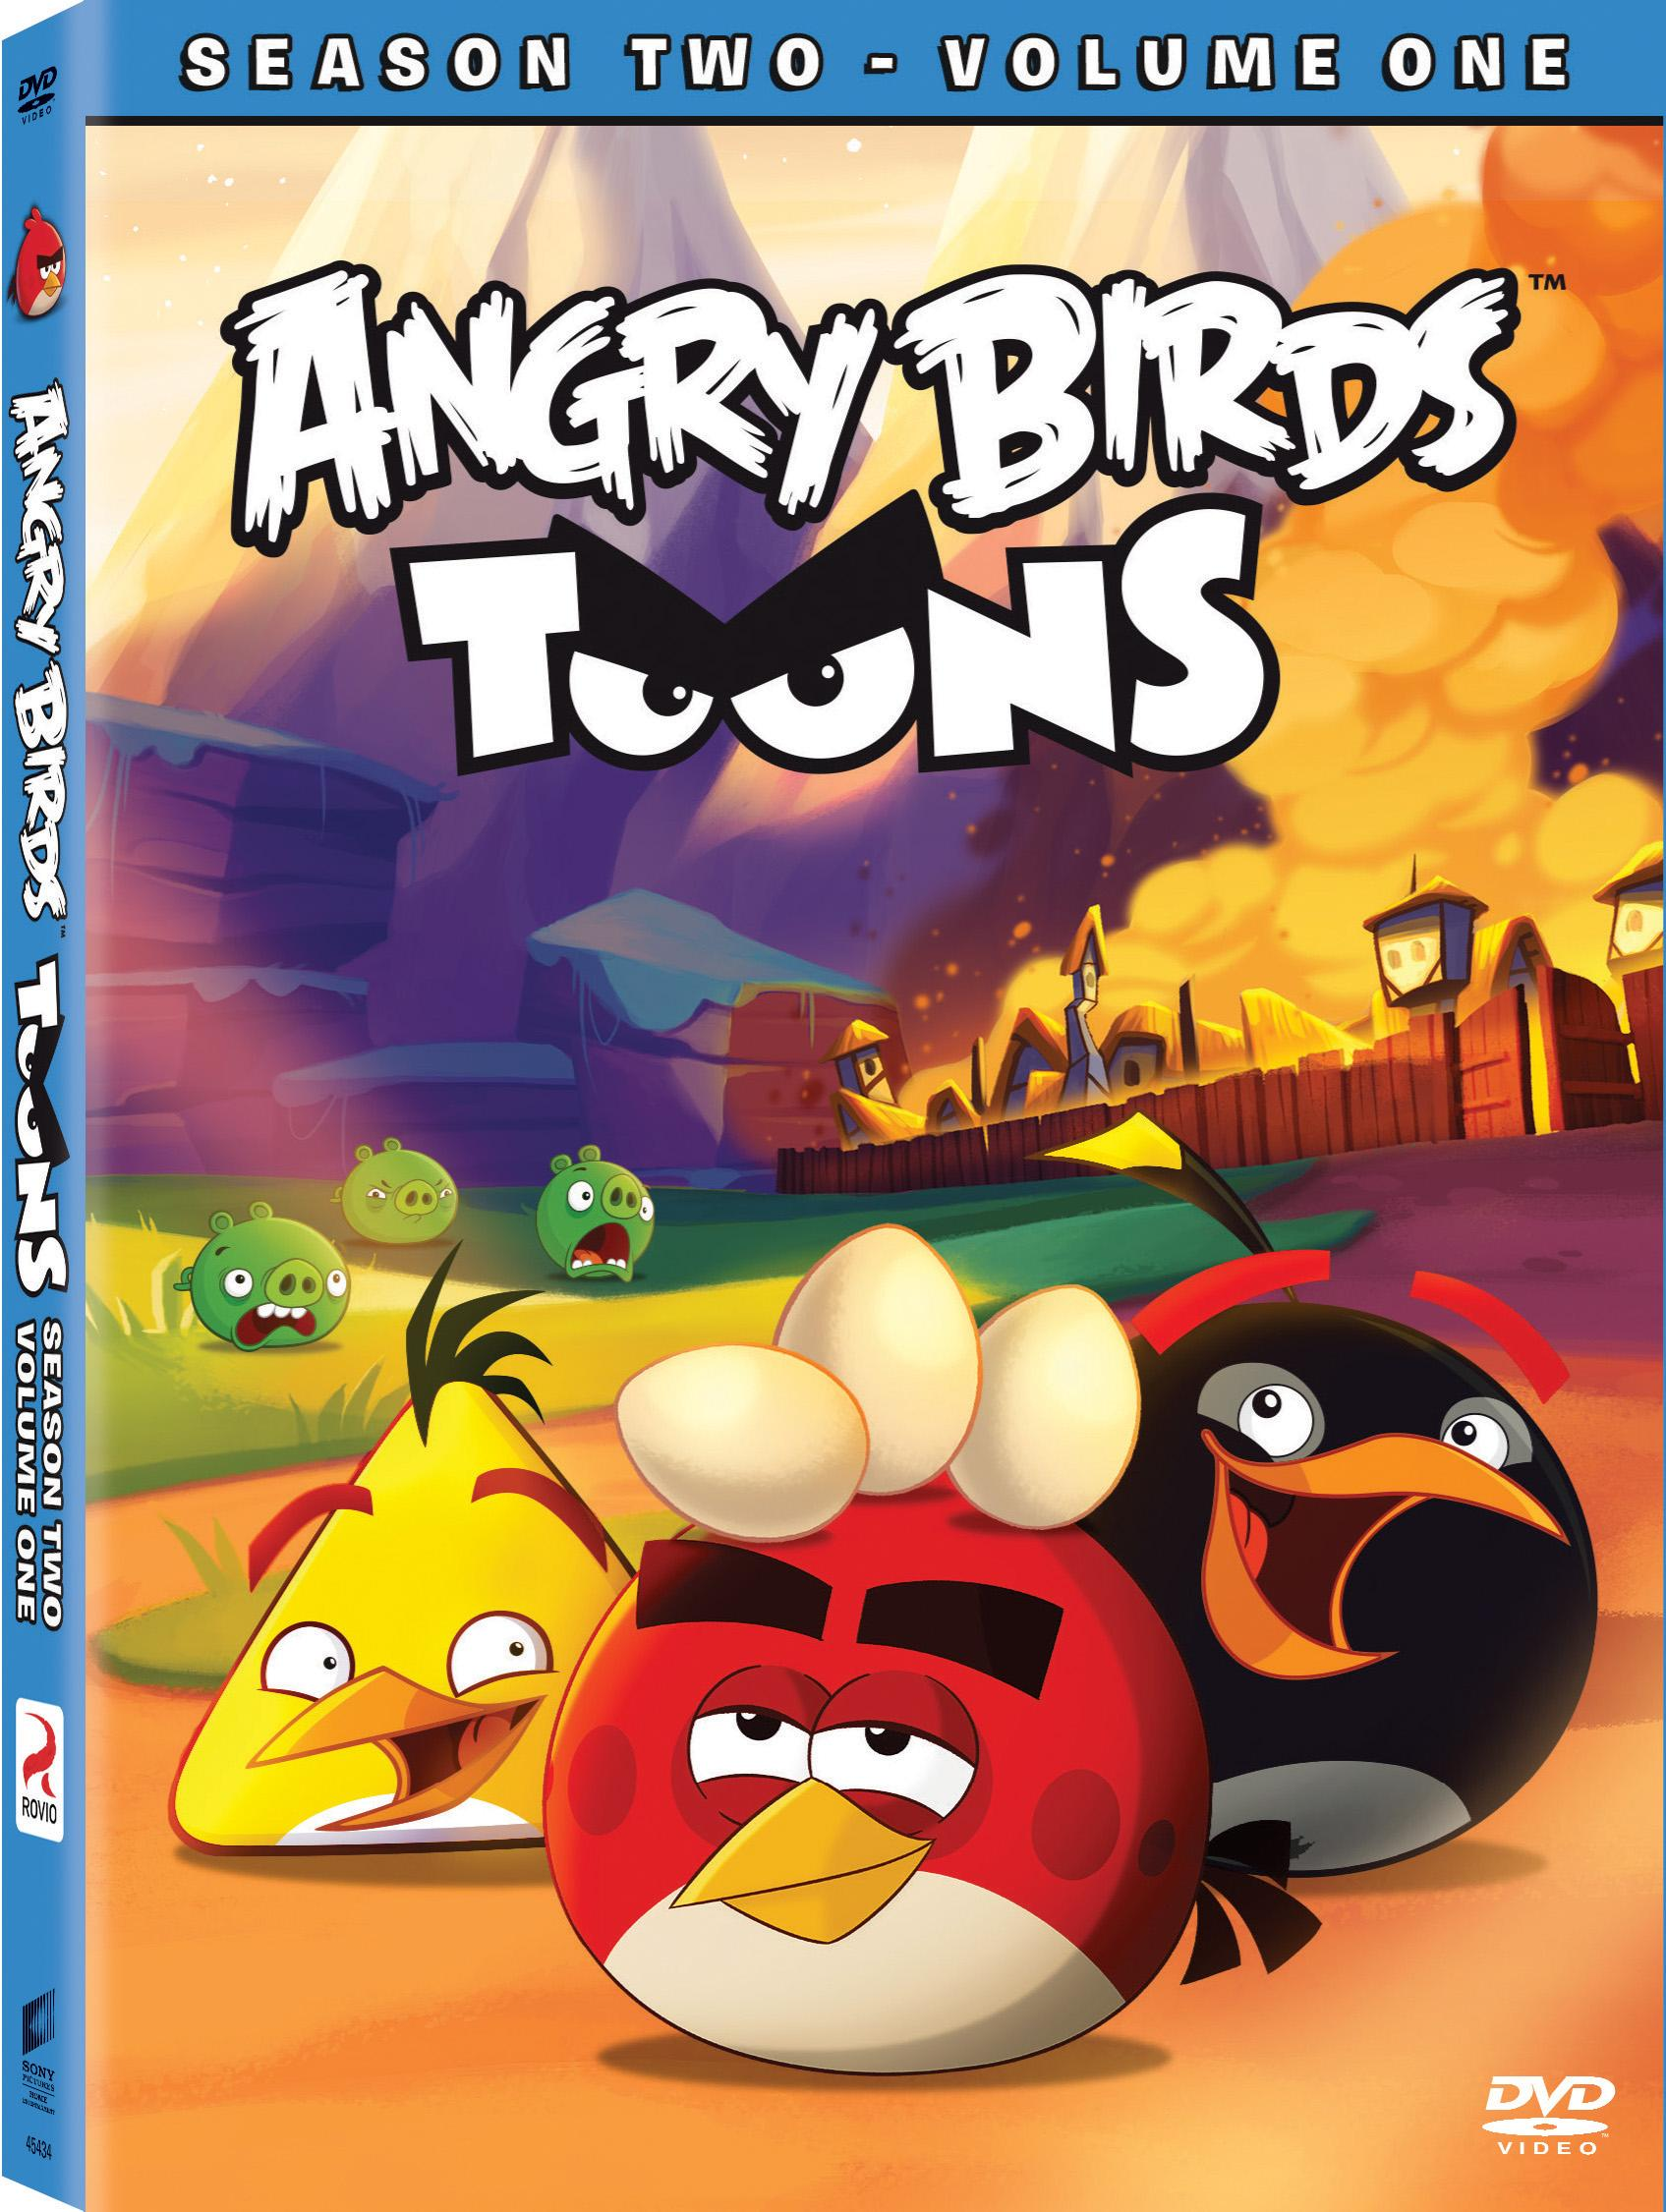 Angry Birds Toons Season 2 Volume 1 Dvd Cover Screen Connections